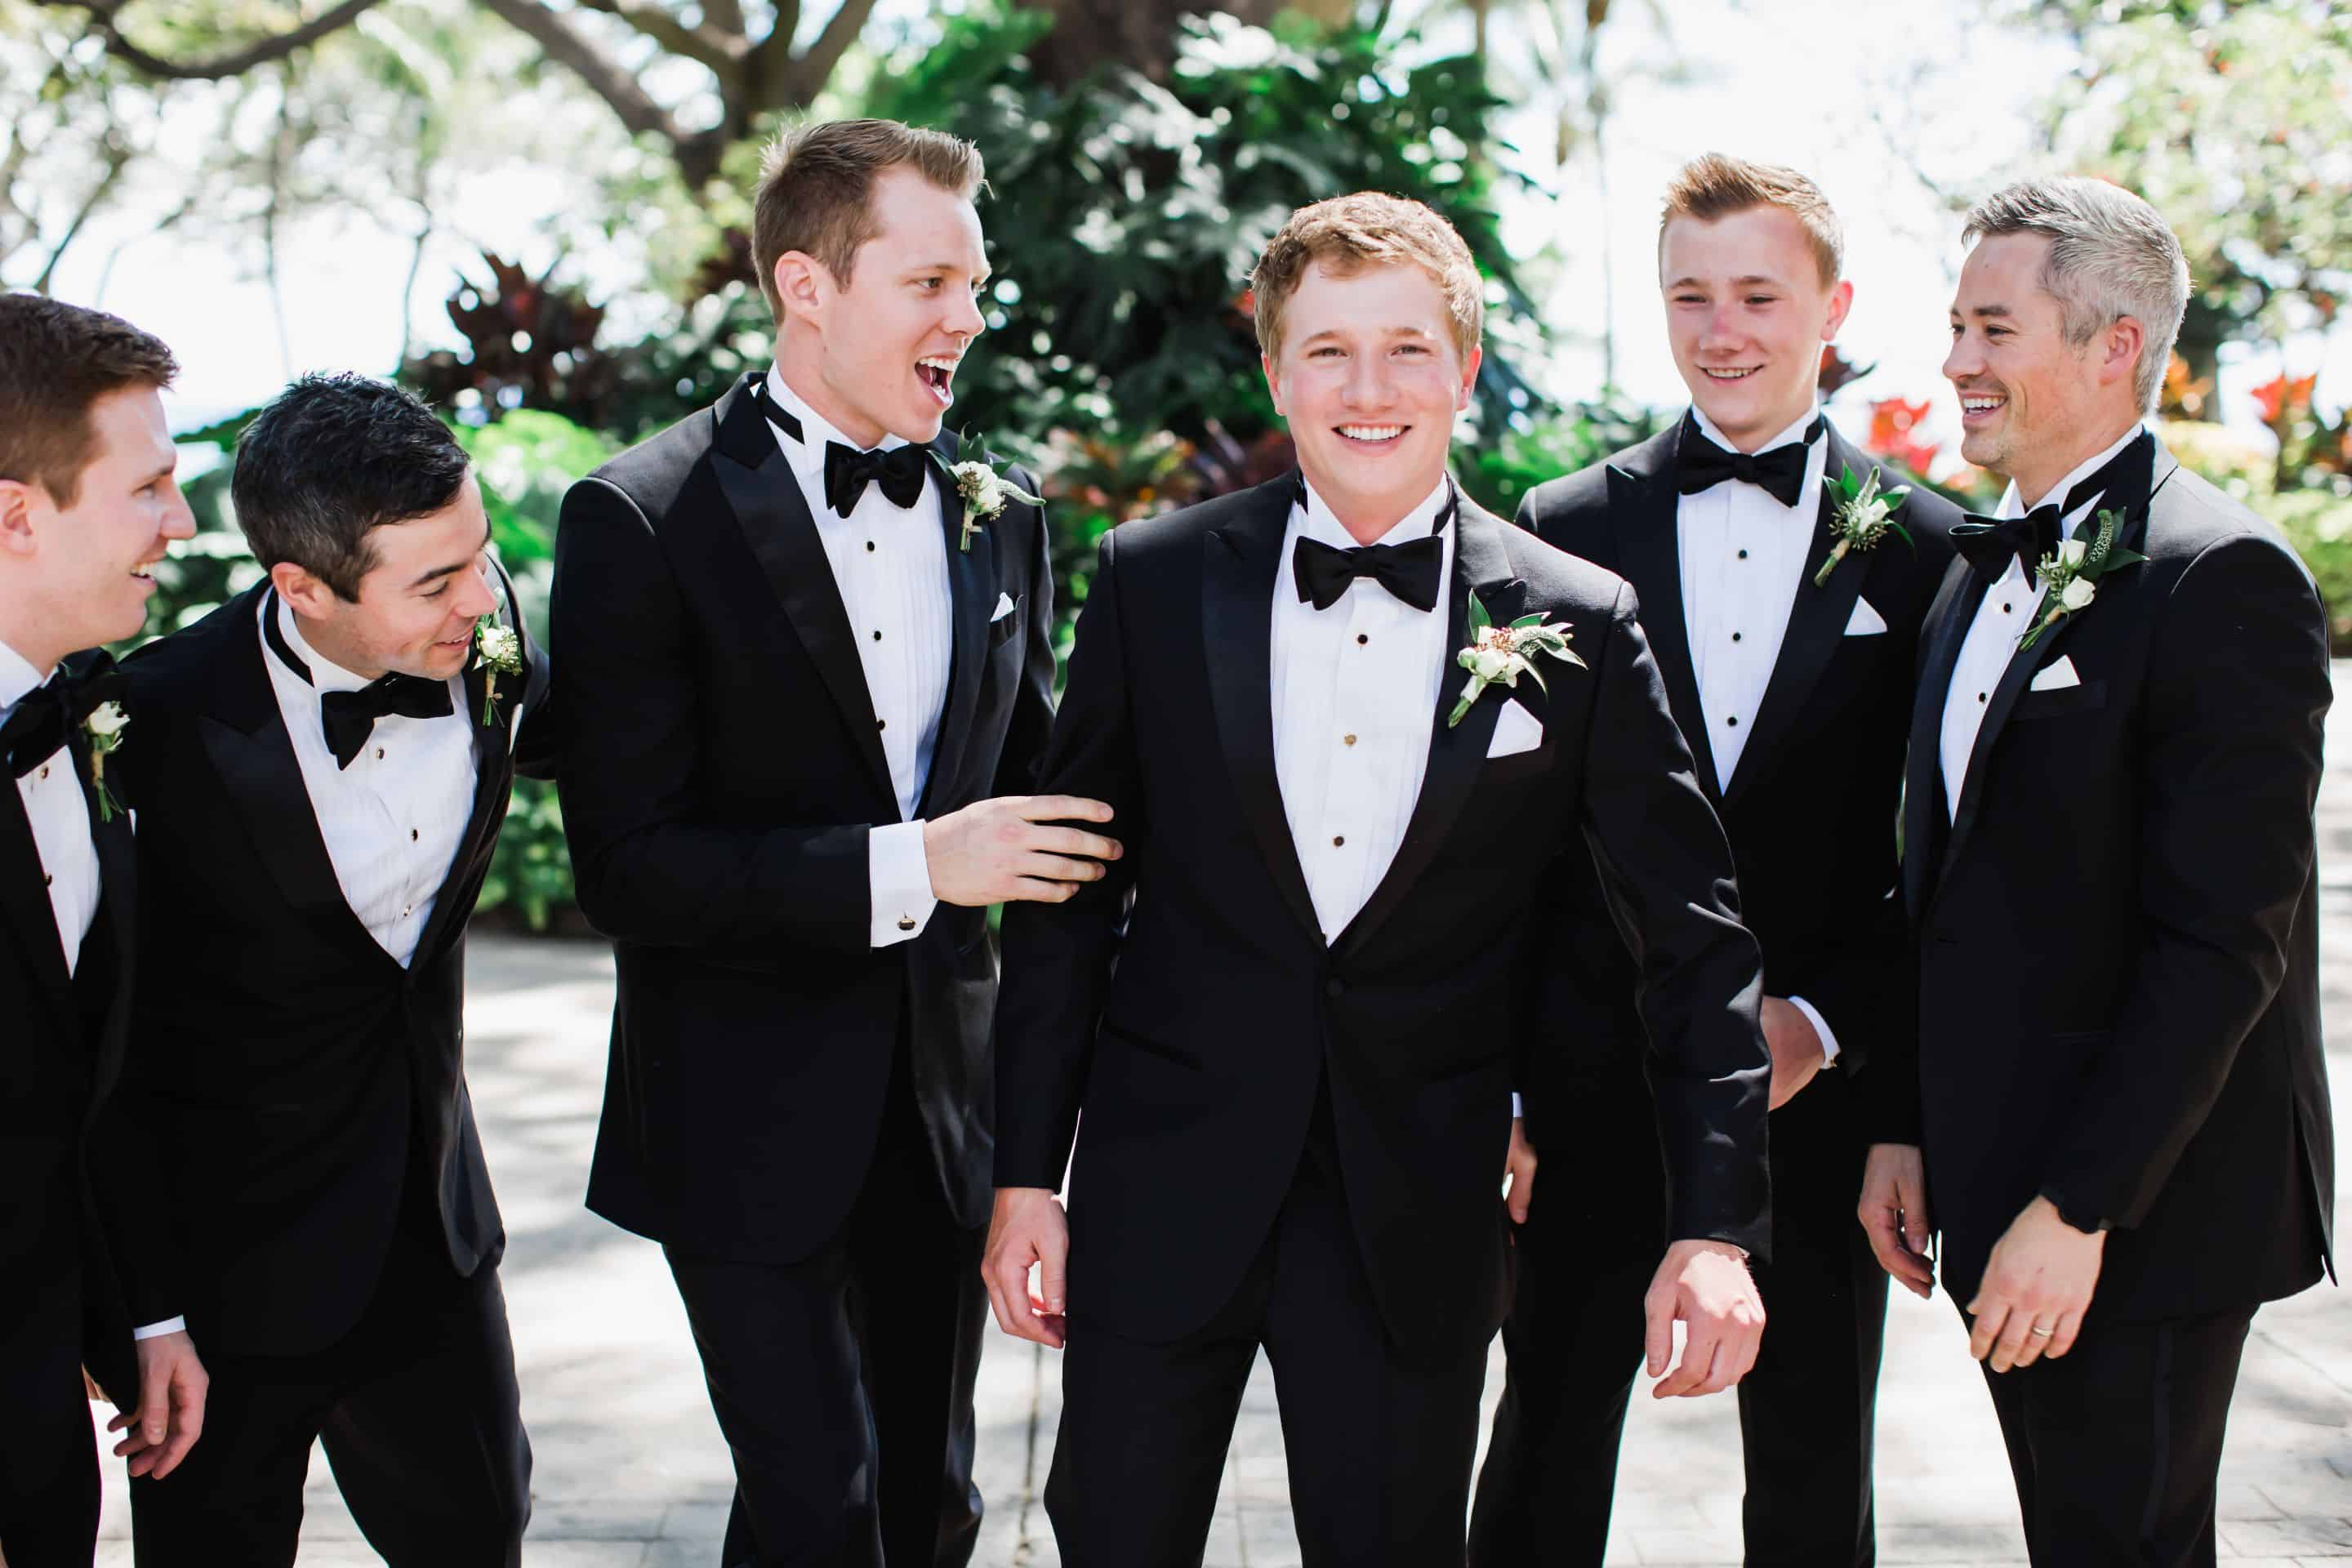 Destination groomsmen in black tuxedos and bow ties | Maui's Angels